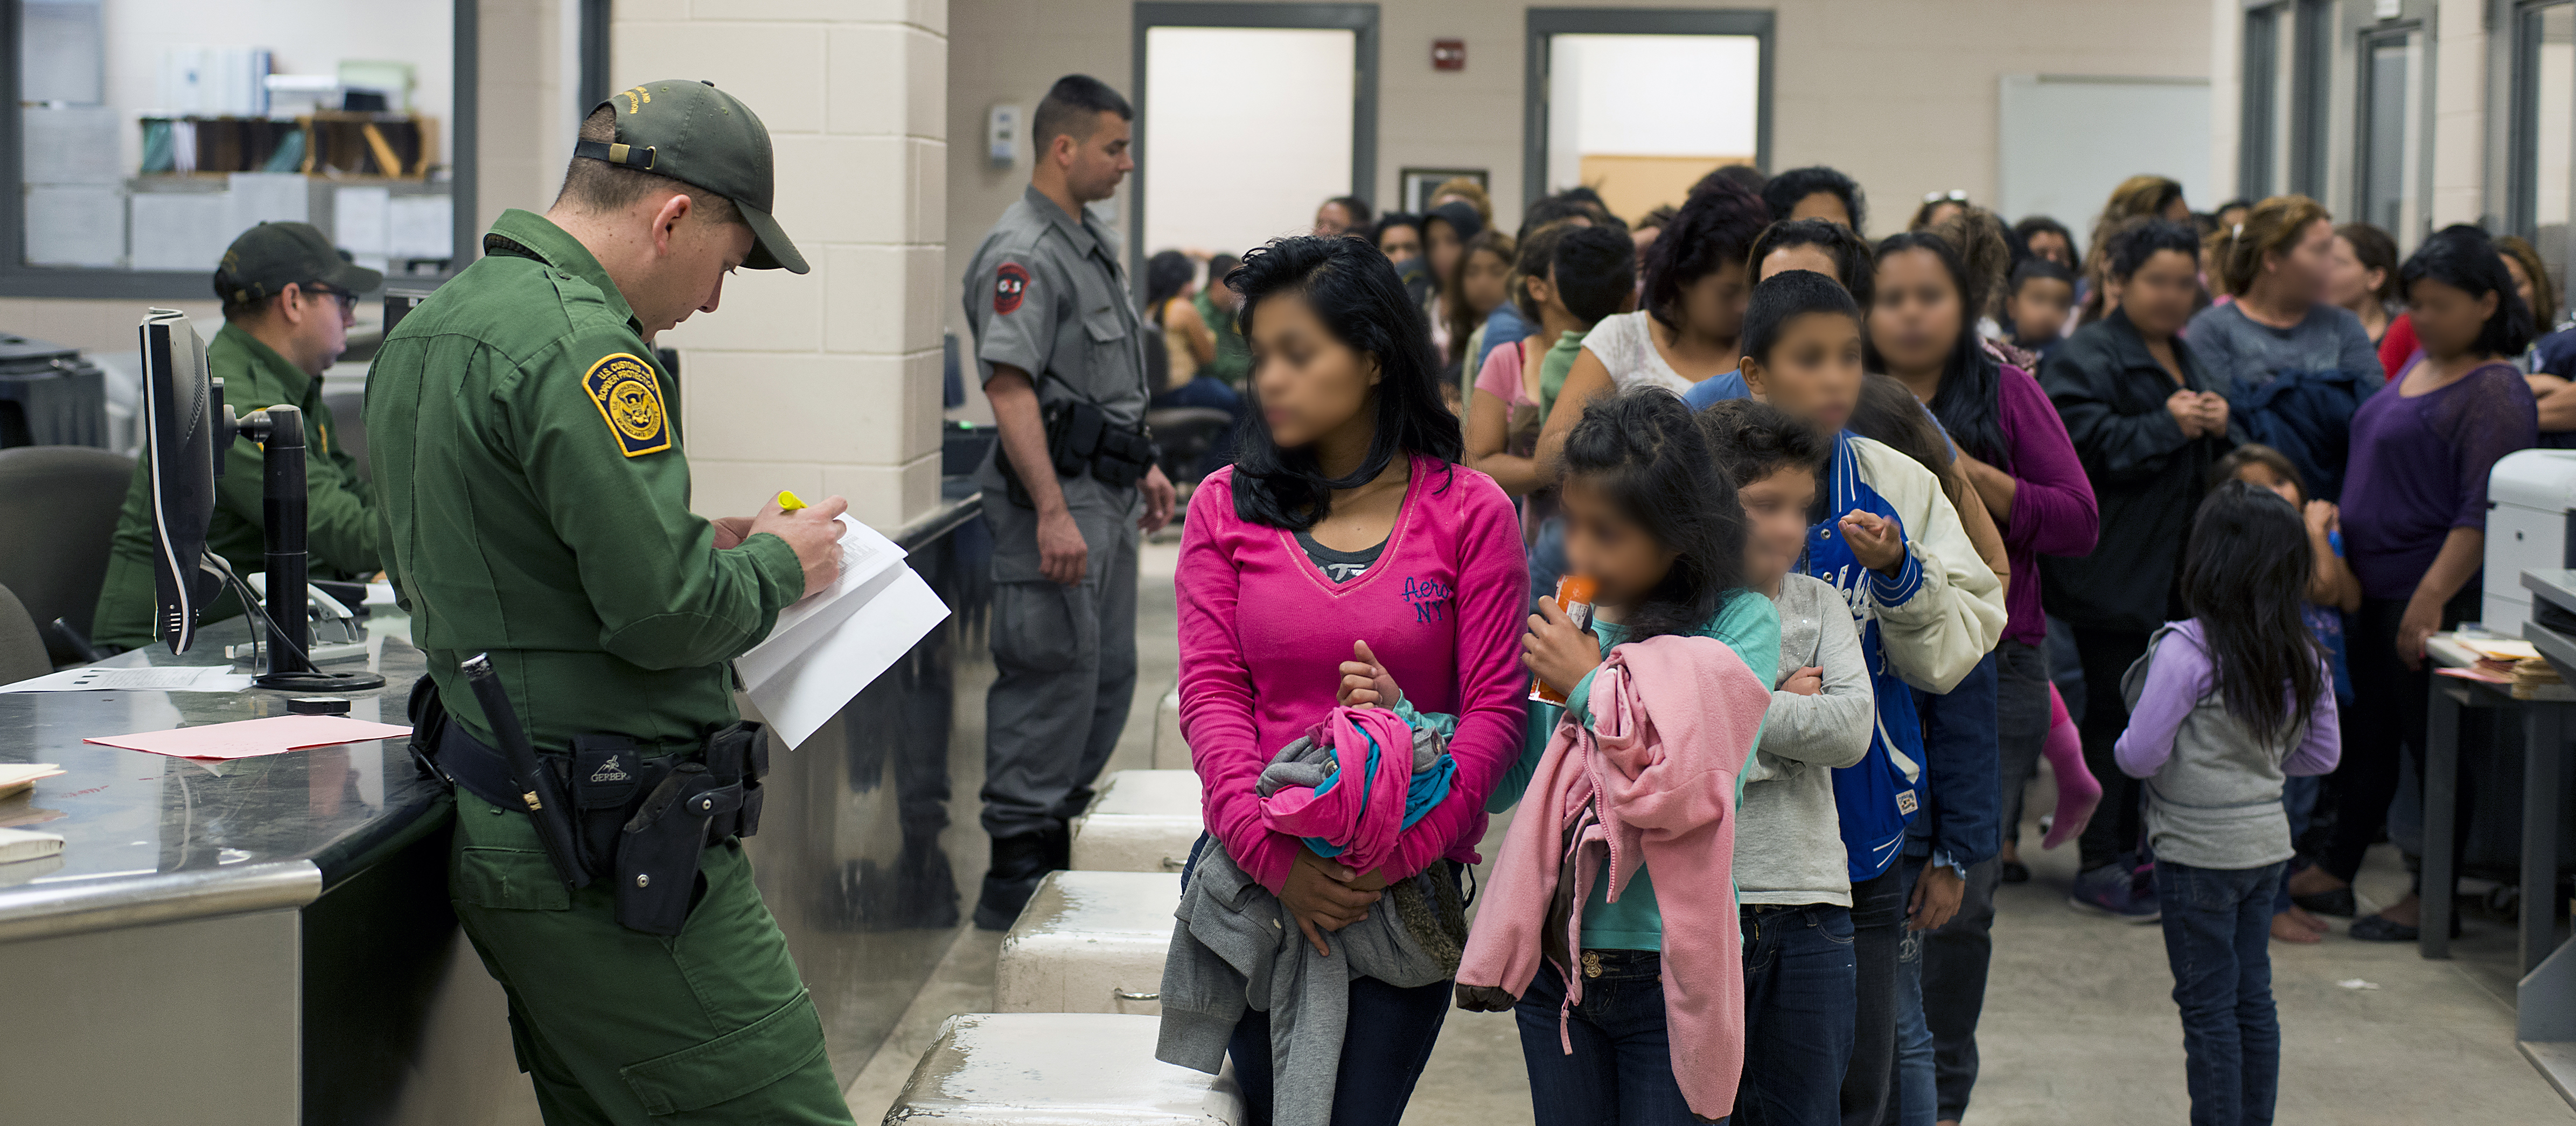 Biden administration to allow migrant children to reunite with parents legally in US